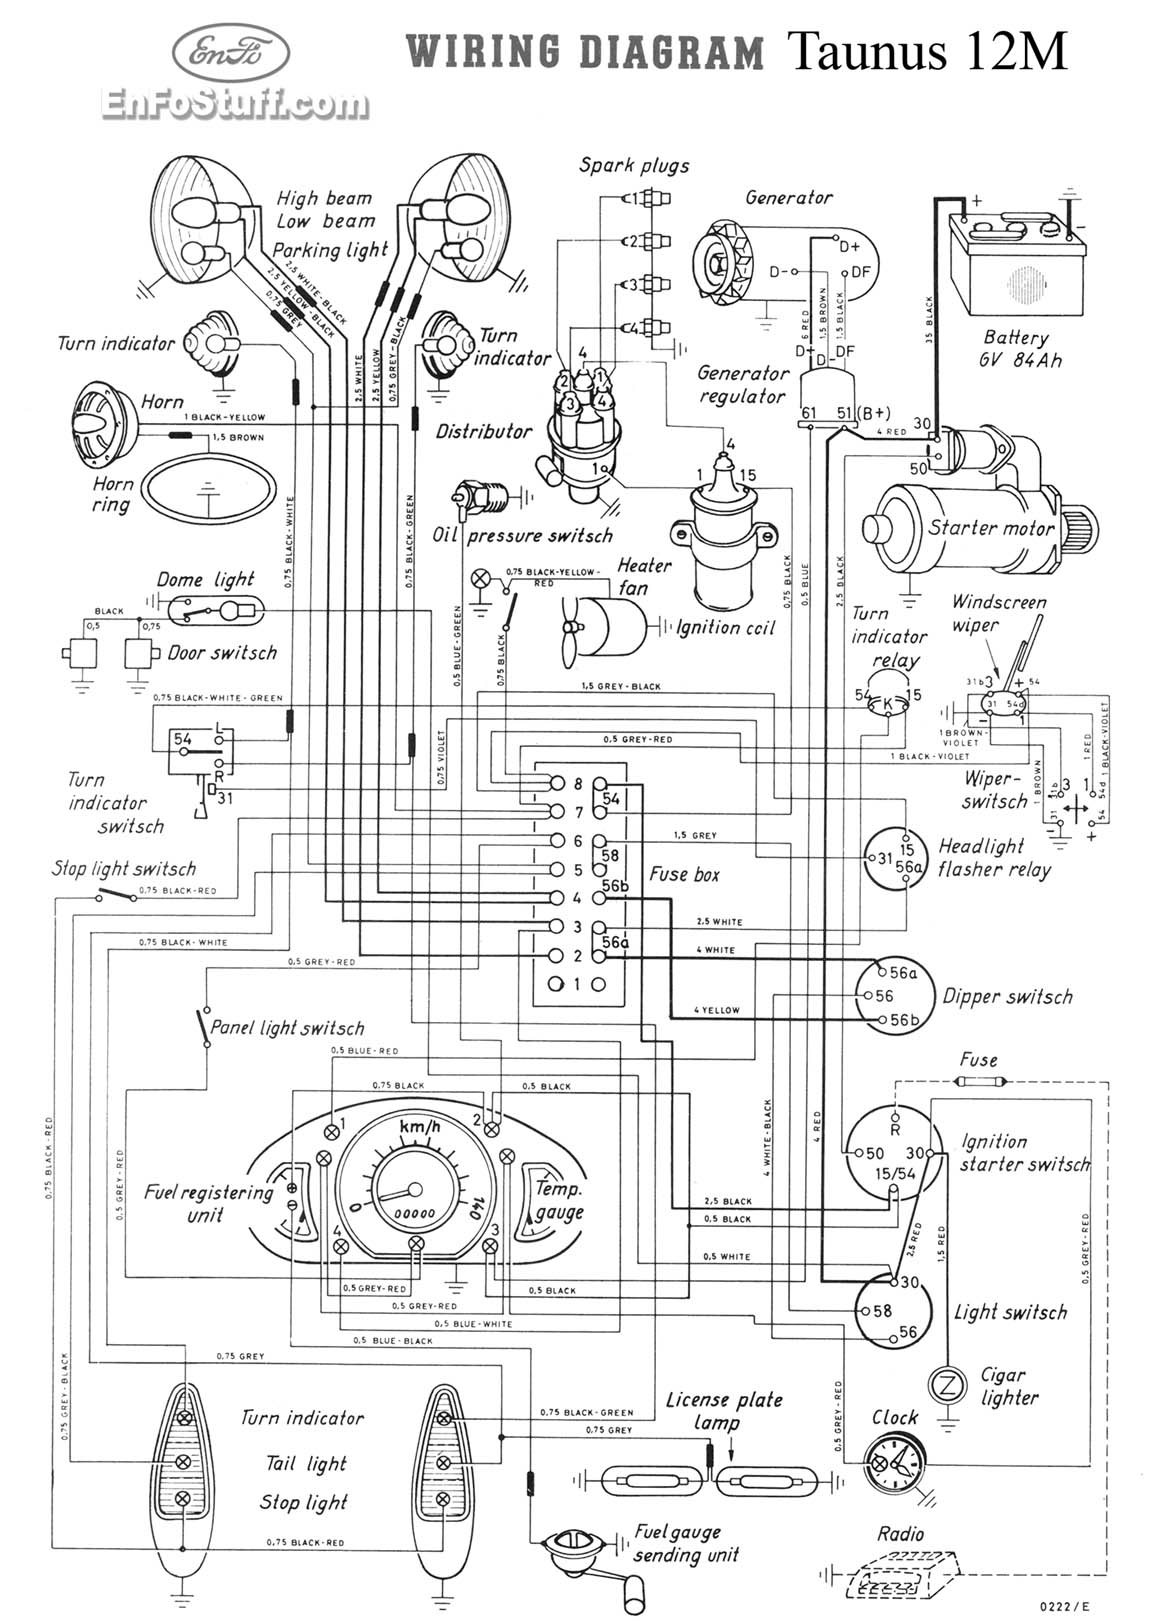 Vw golf mk wiring diagram pdf imageresizertool